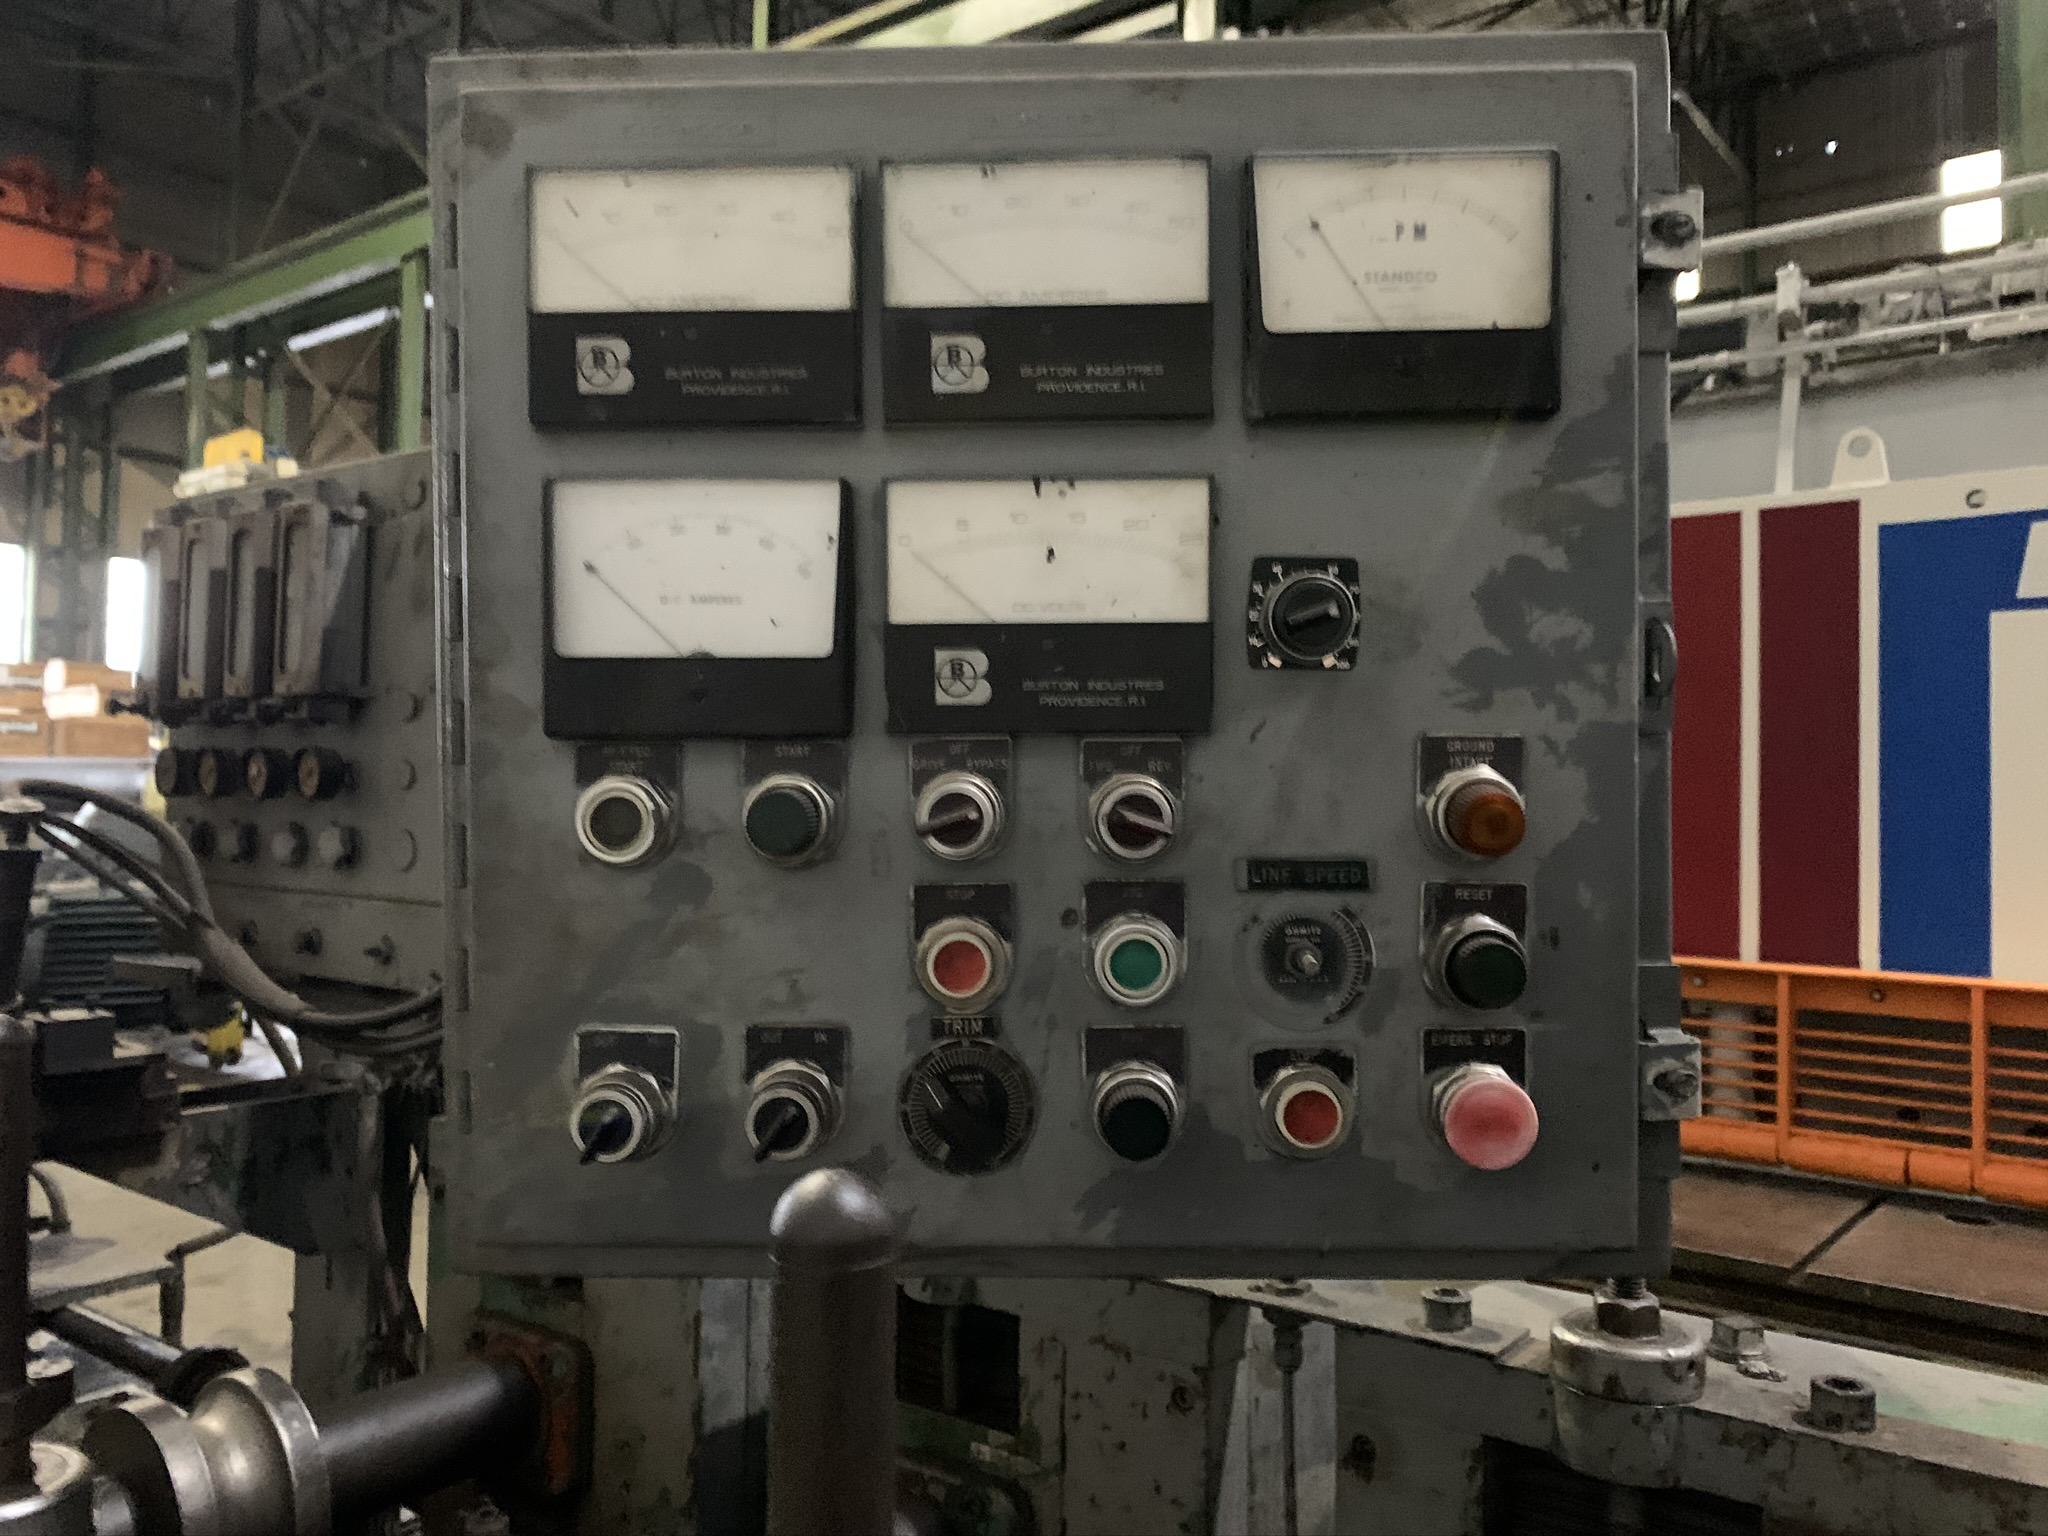 YODER MODEL M2.5 TUBE MILL; S/N C0-1424, 9-STAND 4-BREADKDOWN STANDS, (3) FINISHING STANDS, (2) - Image 6 of 8